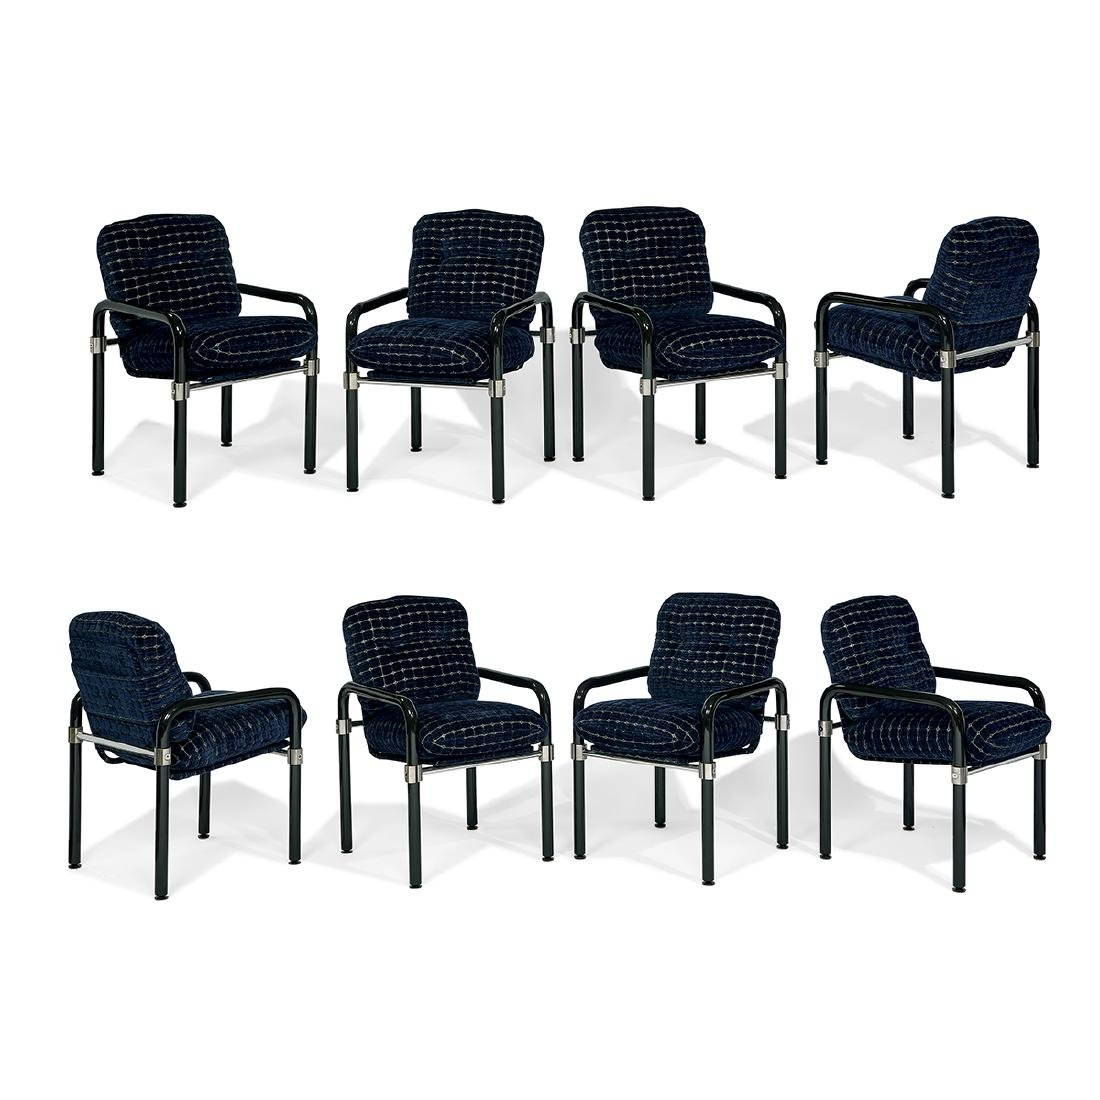 Jeff Messerschmidt Pipe Line dining chairs, eight